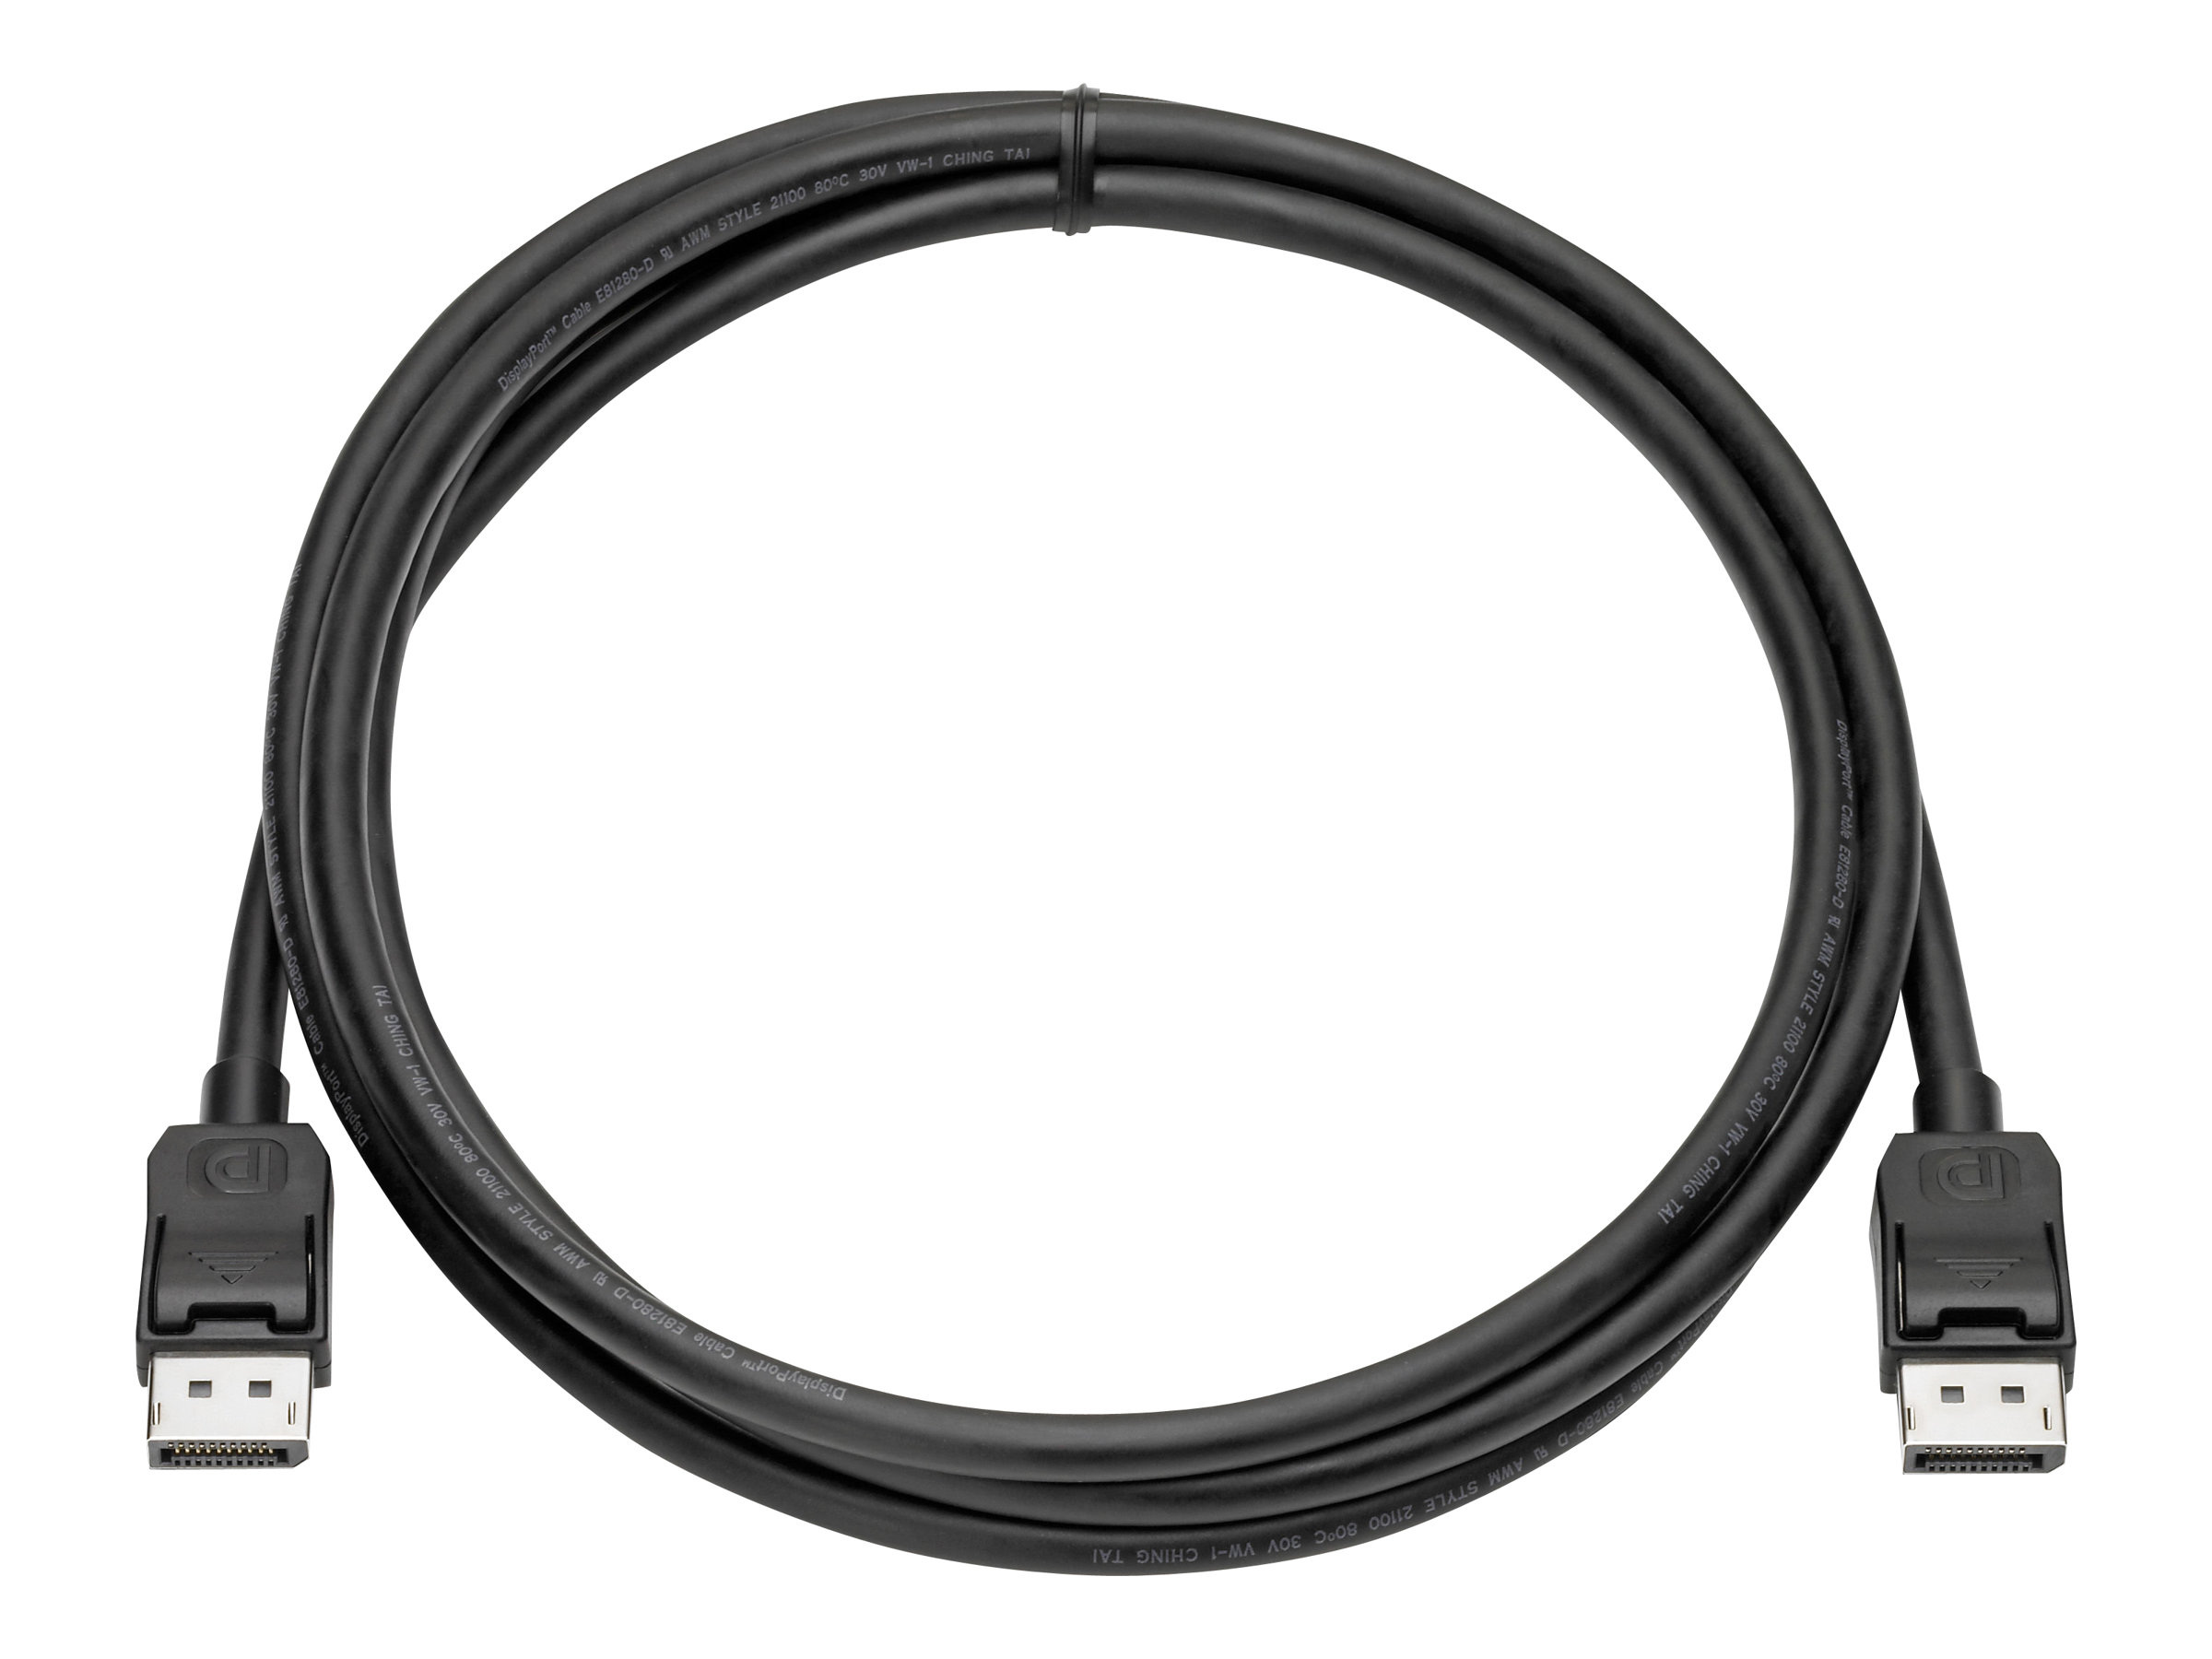 HP display cable kit - 2 m